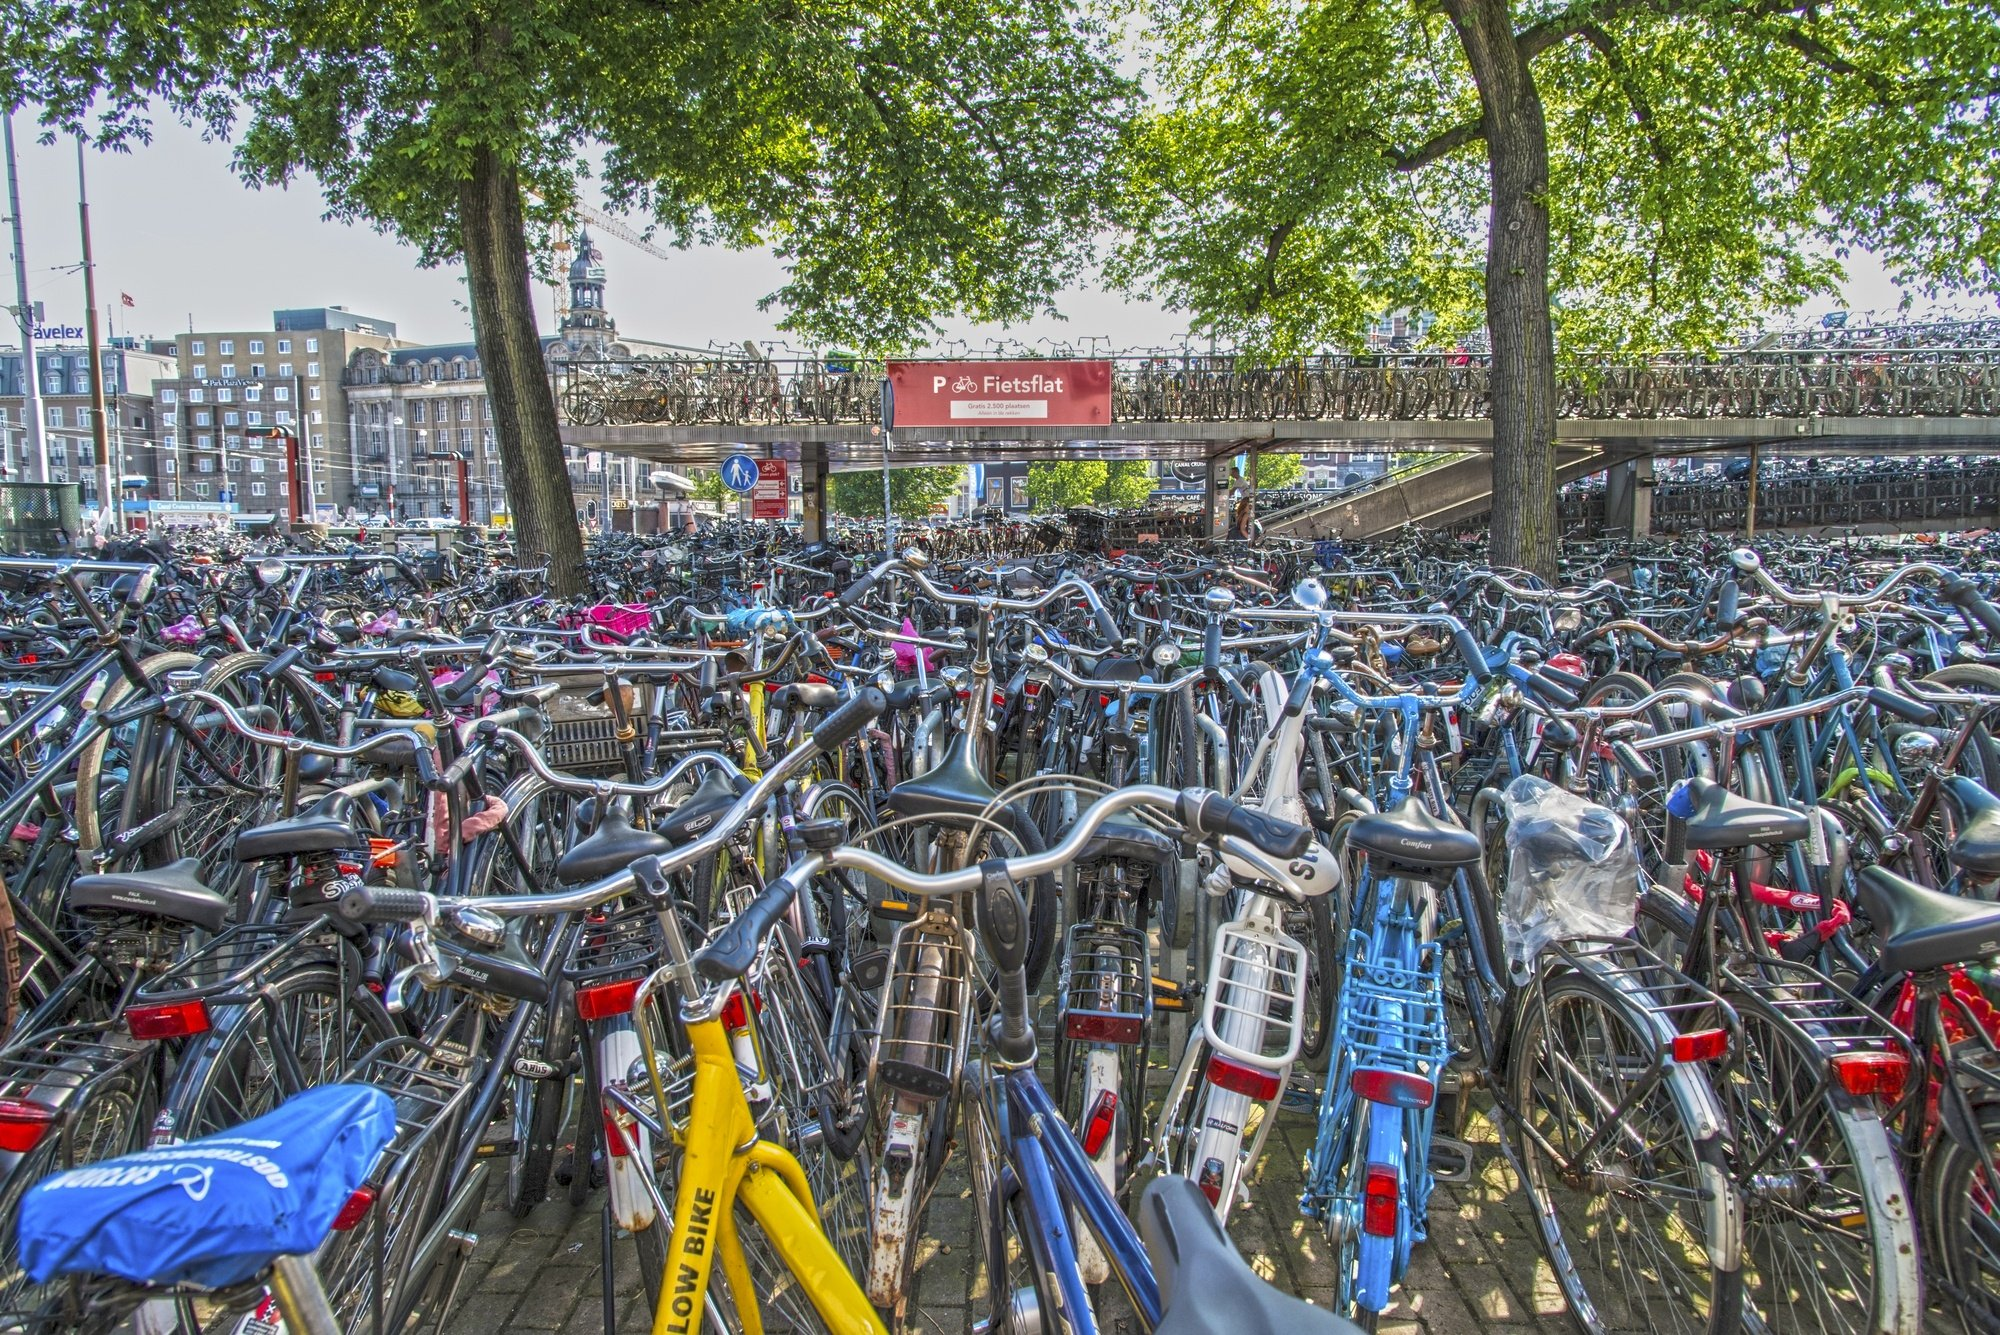 Dutch love of bicycles